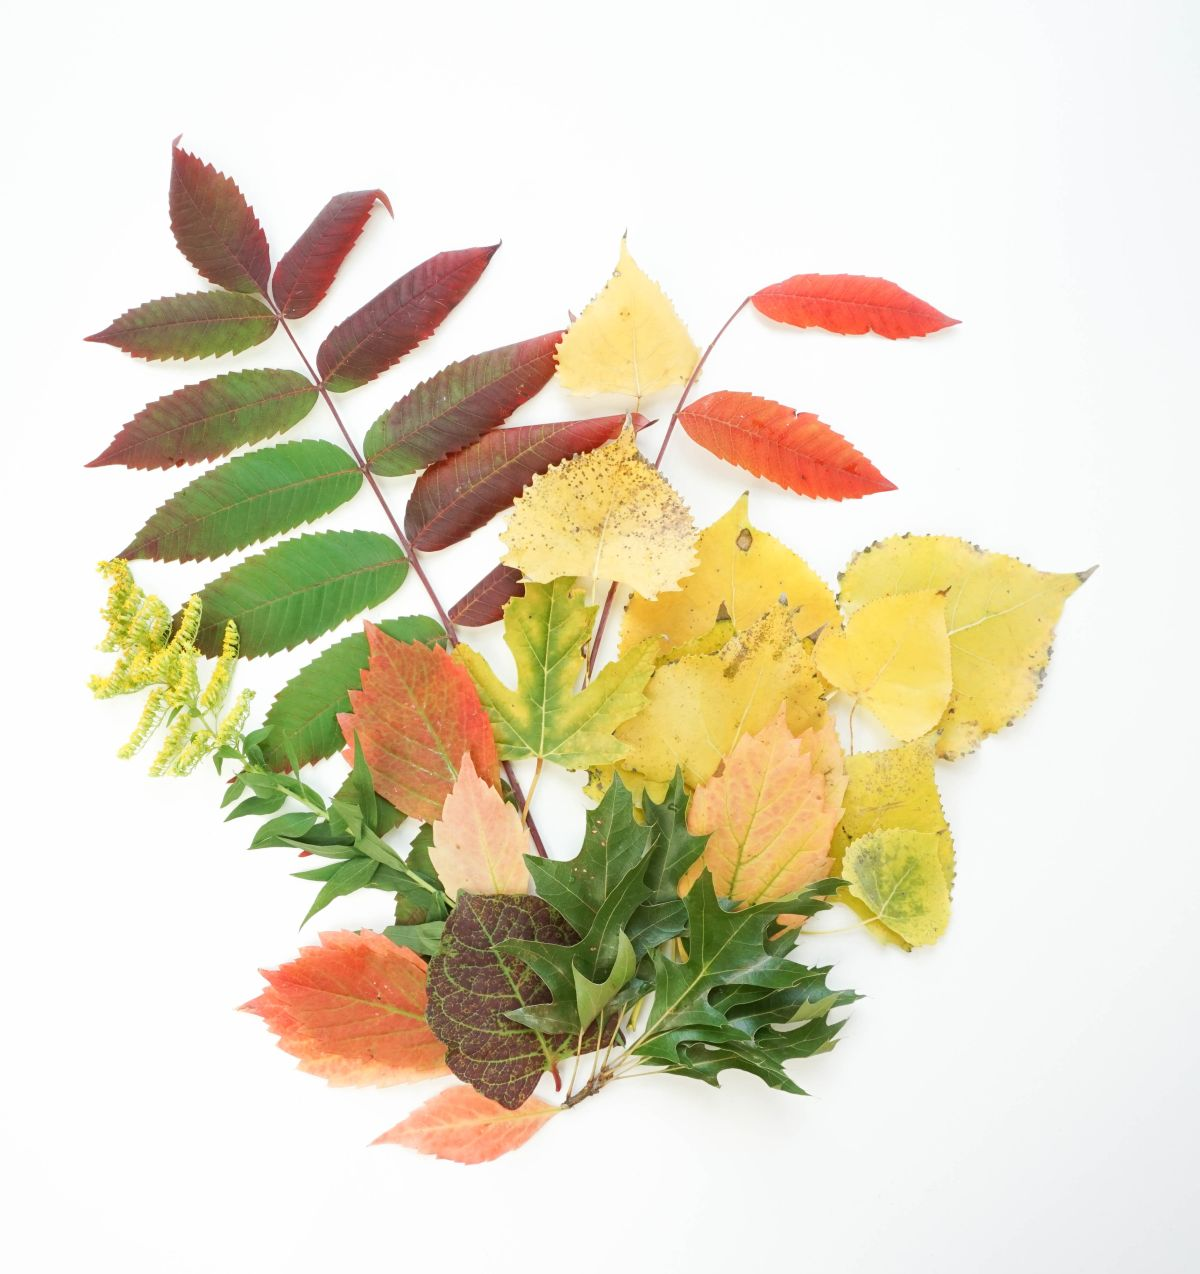 Collect fallen colorful leaves